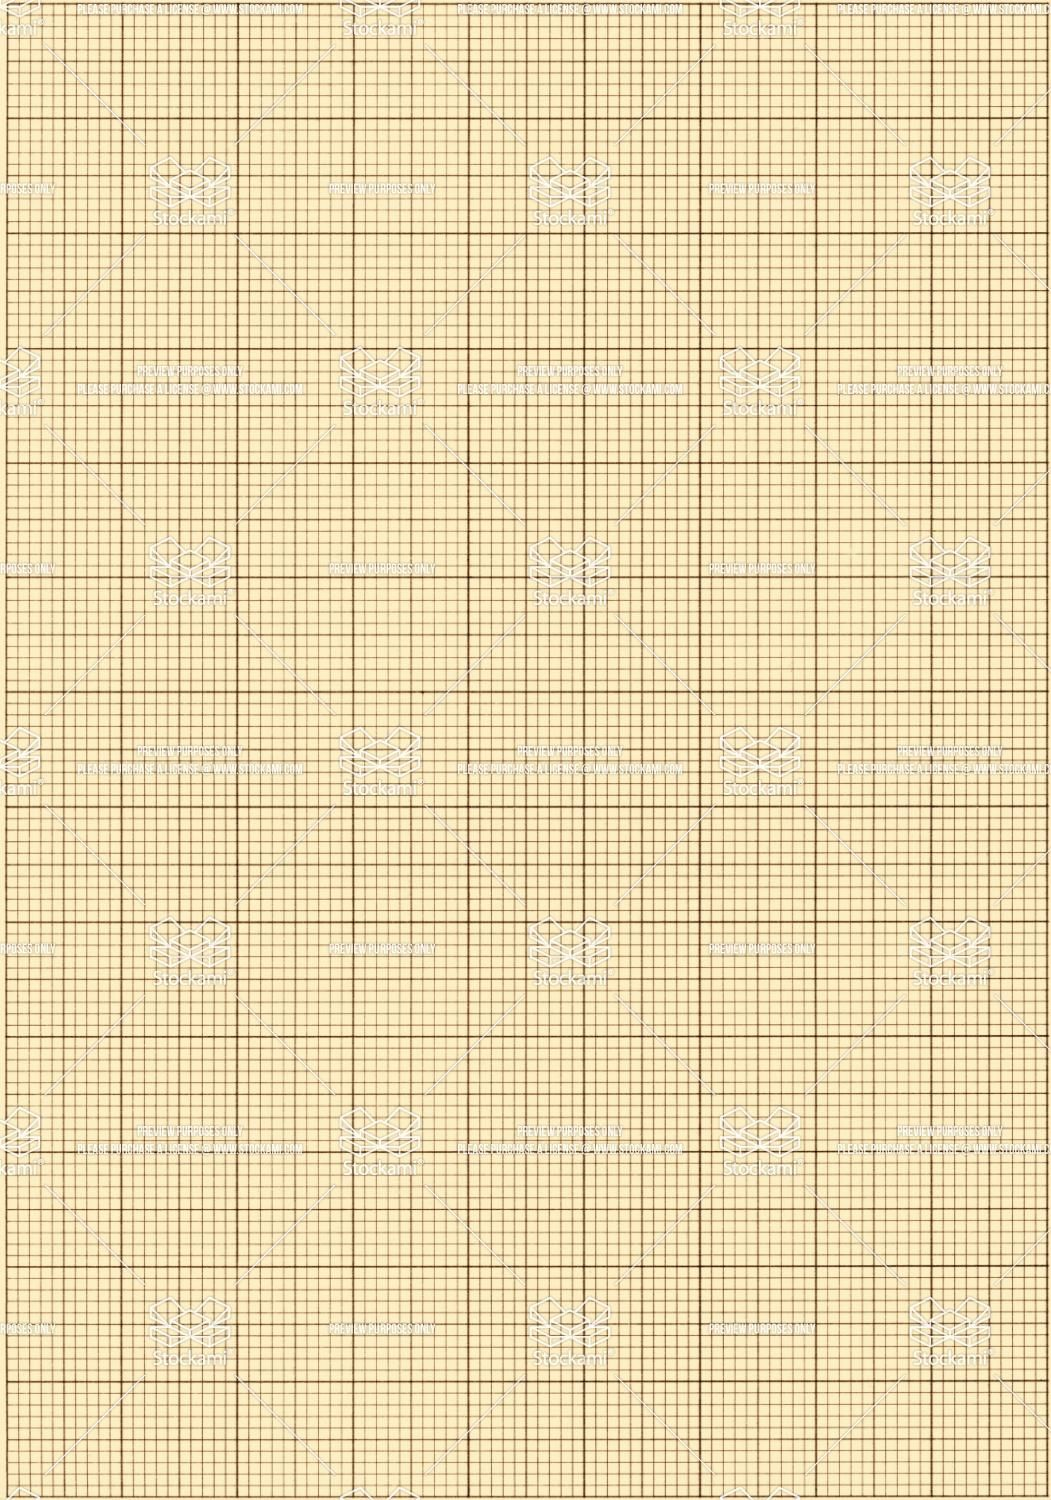 Old Sepia Graph Paper Square Grid Background  Stockami  Royalty